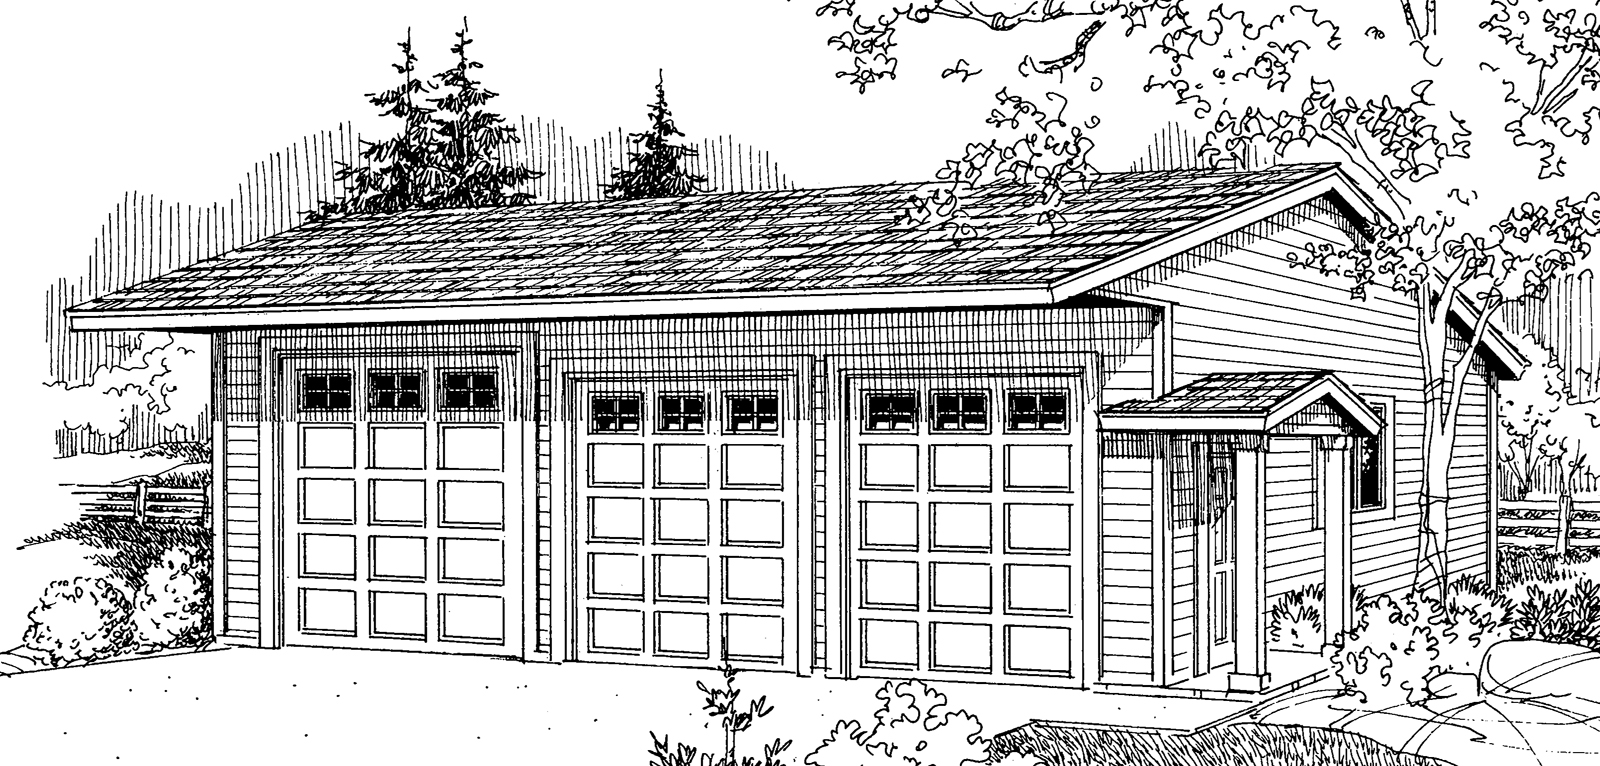 Awesome 13 images 6 car garage plans home building plans 6 car garage plans